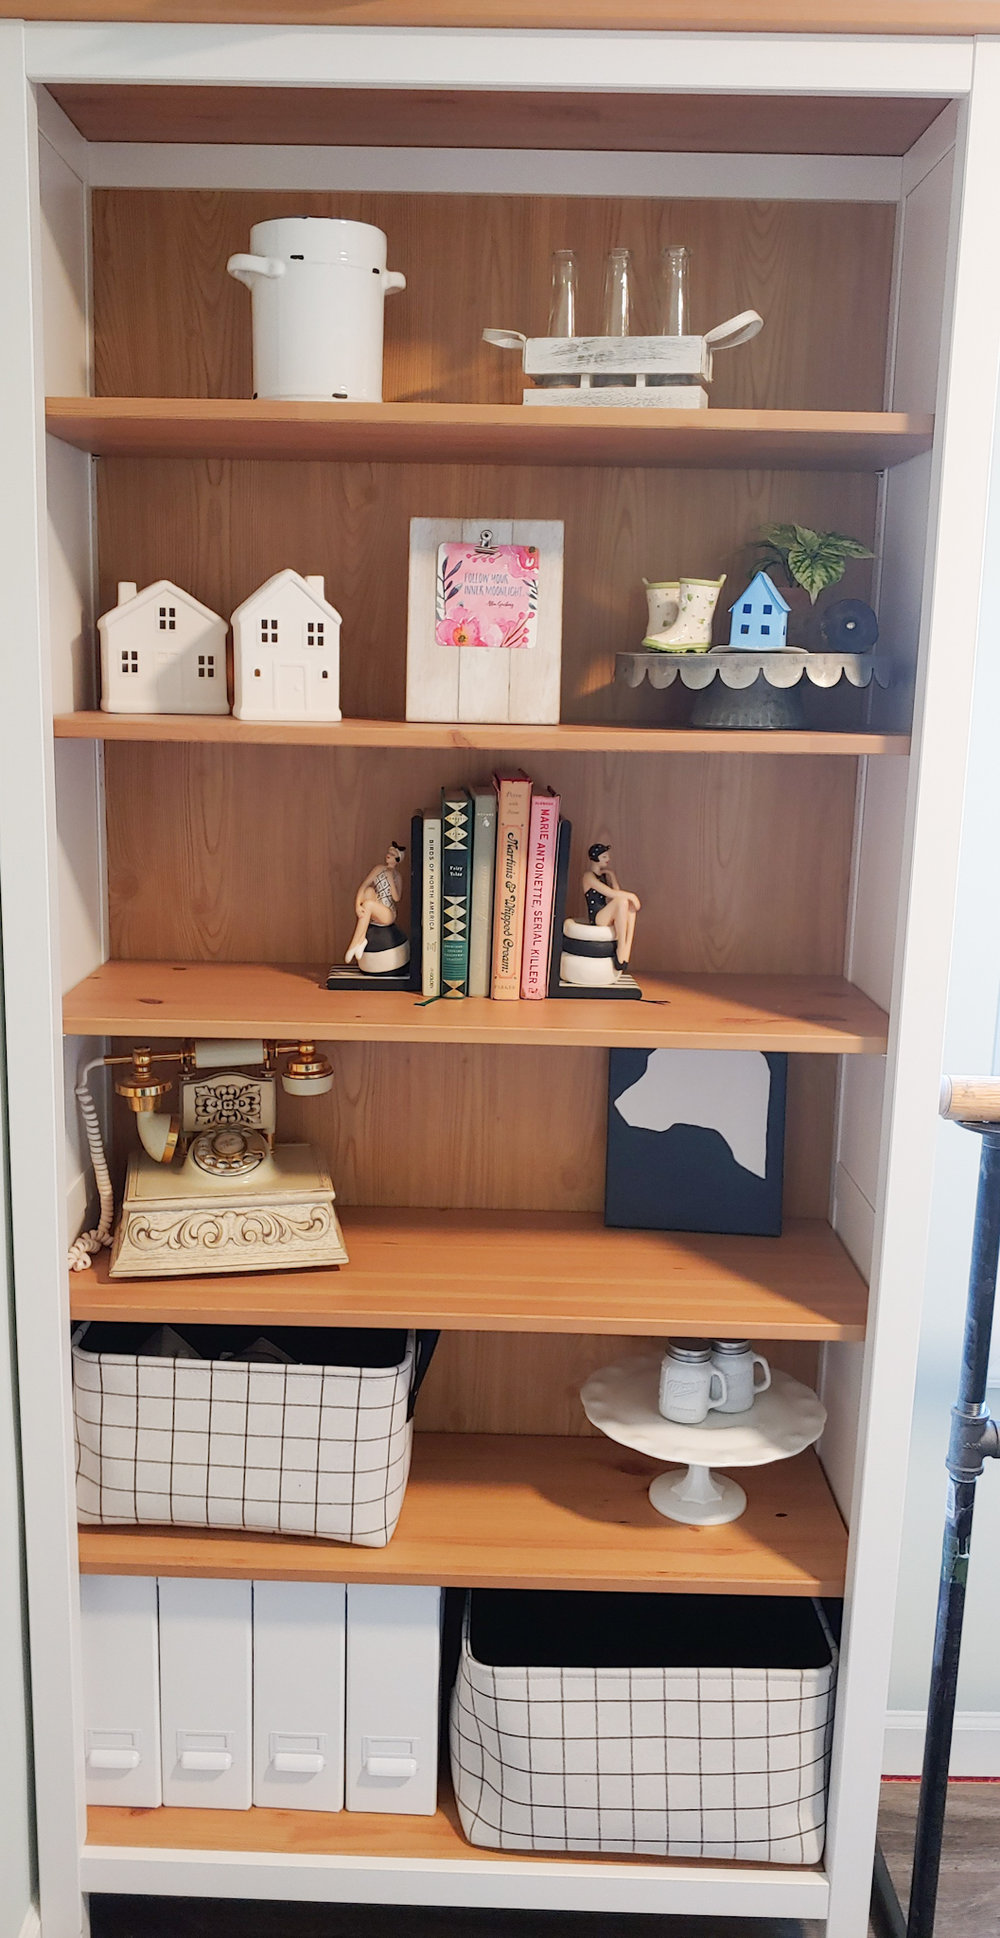 The fabric bins fit perfectly on this bookcase